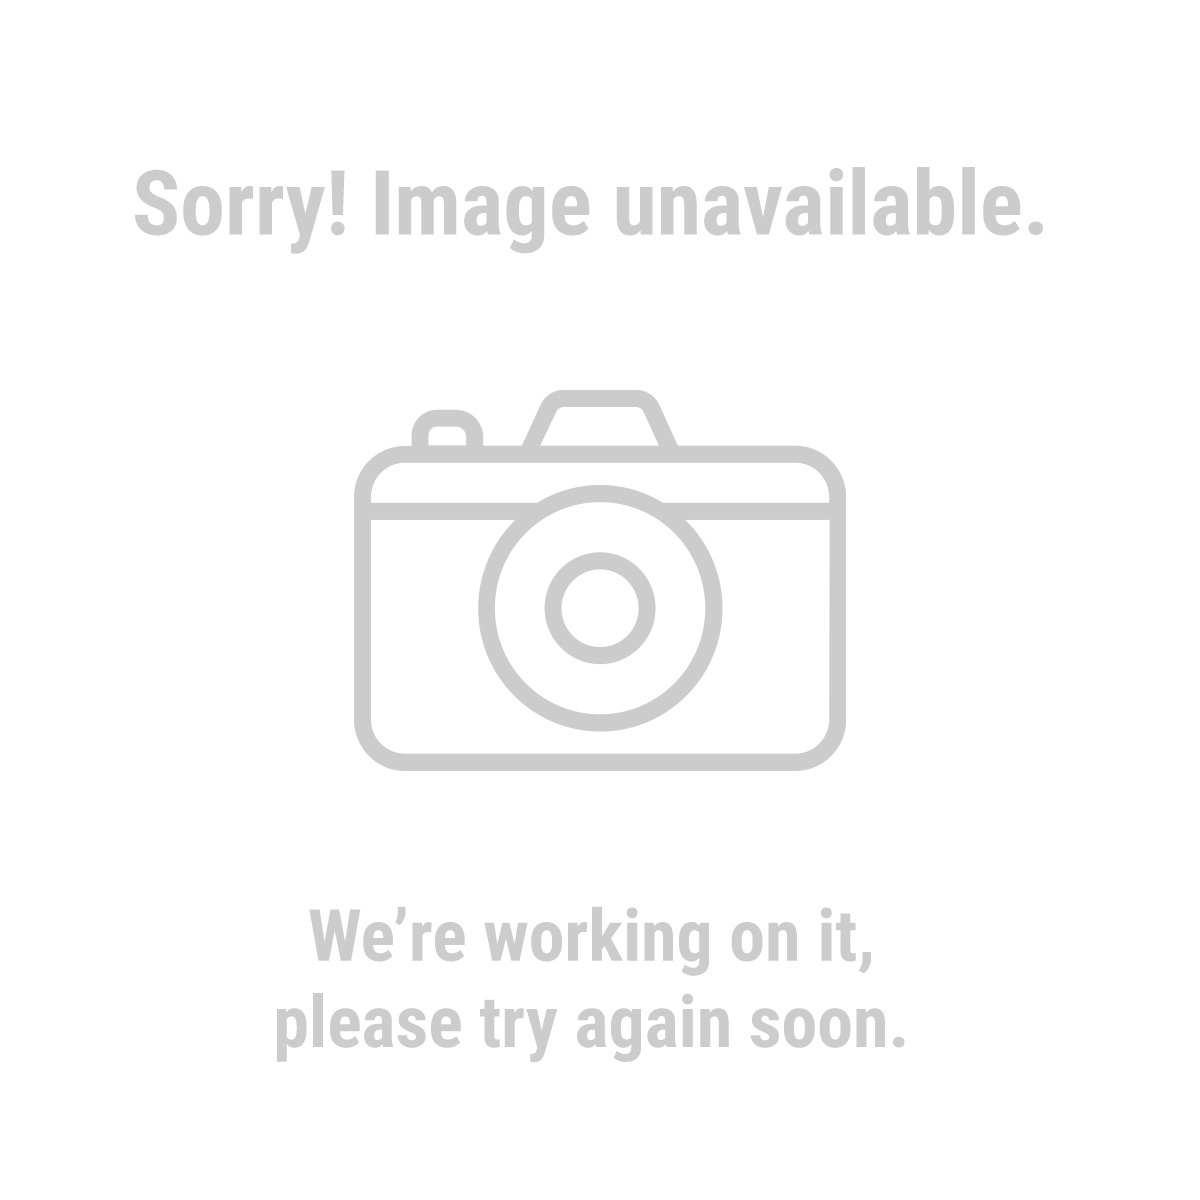 12 Ft X 19 6 In Mesh All Purpose Weather Resistant